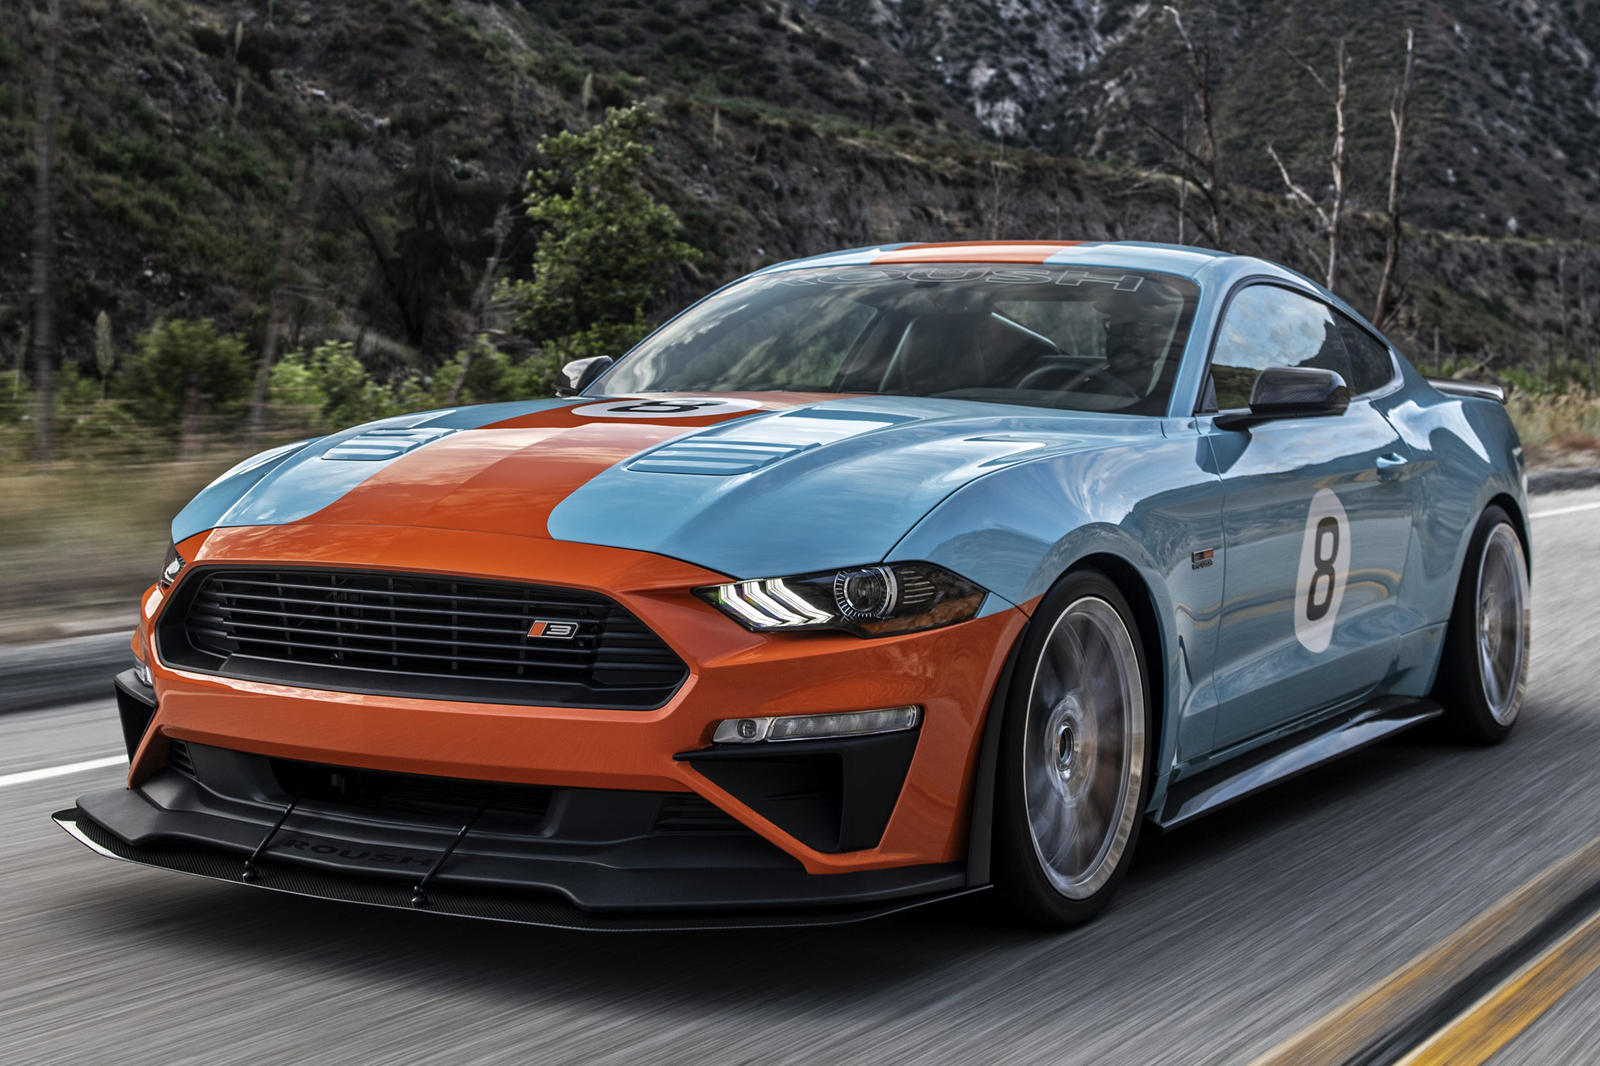 This 710-HP Track-Capable Roush Mustang Is Perfection